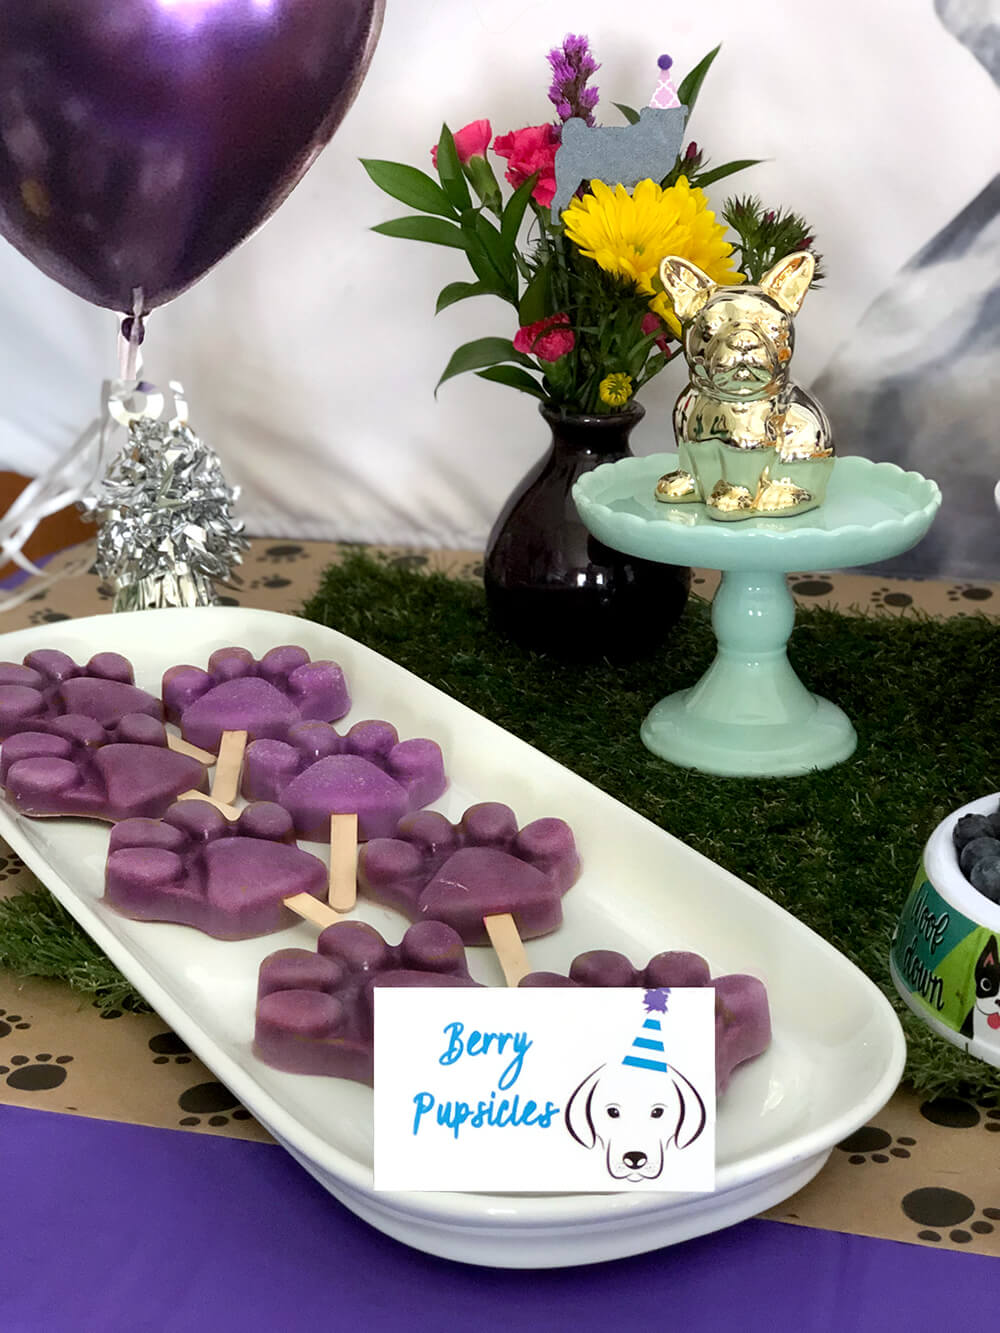 Smoothie pupsicles - Puppy Themed Birthday Party Food Ideas